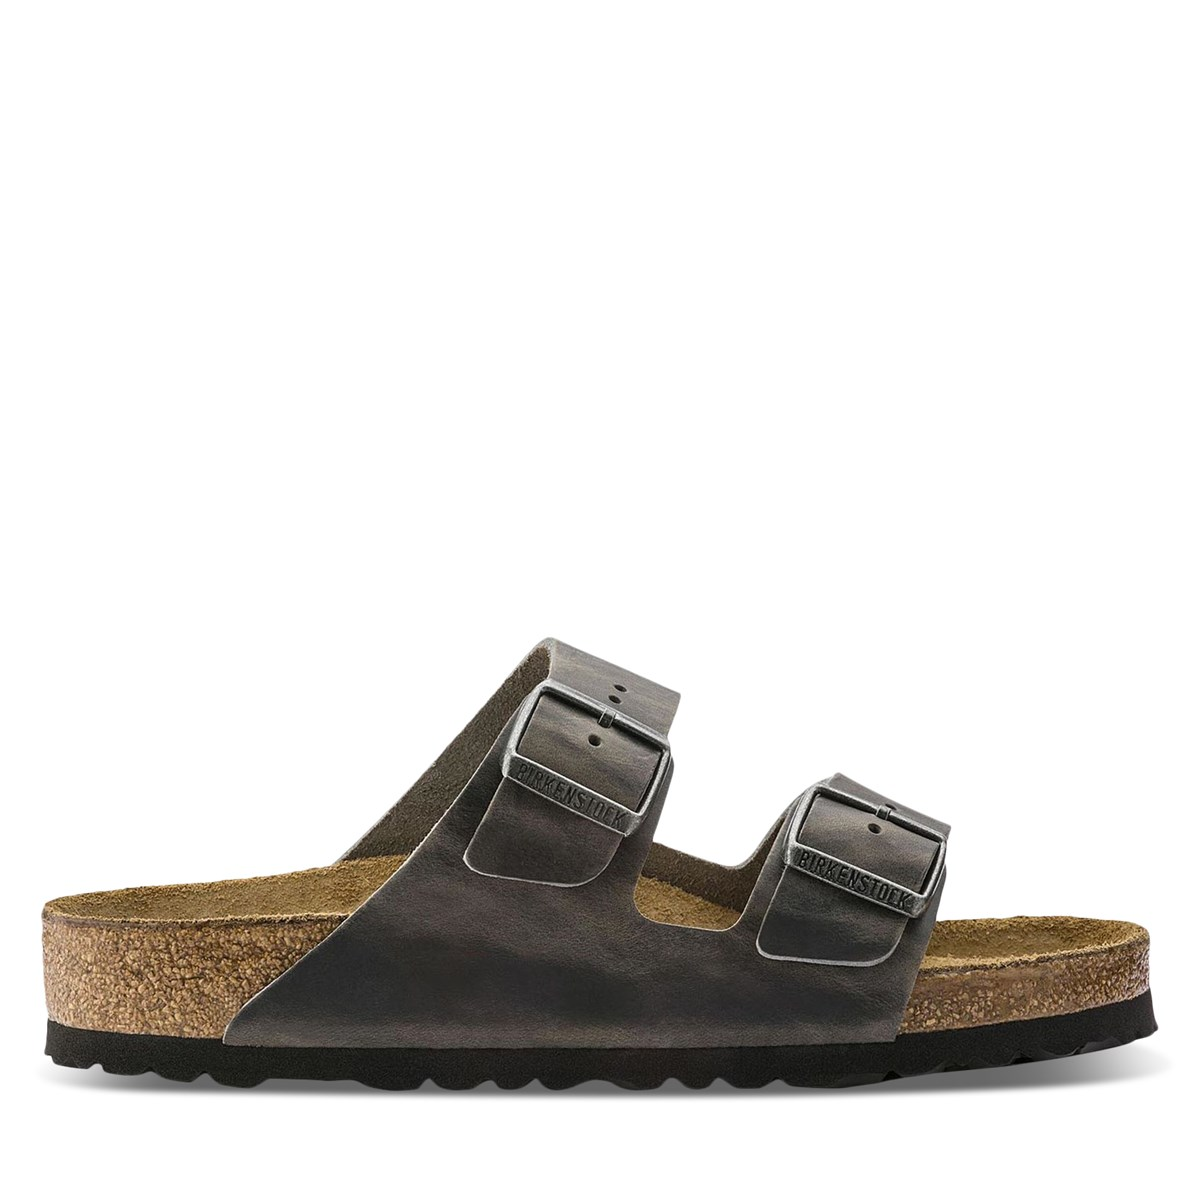 Men's Arizona Sandals in Grey